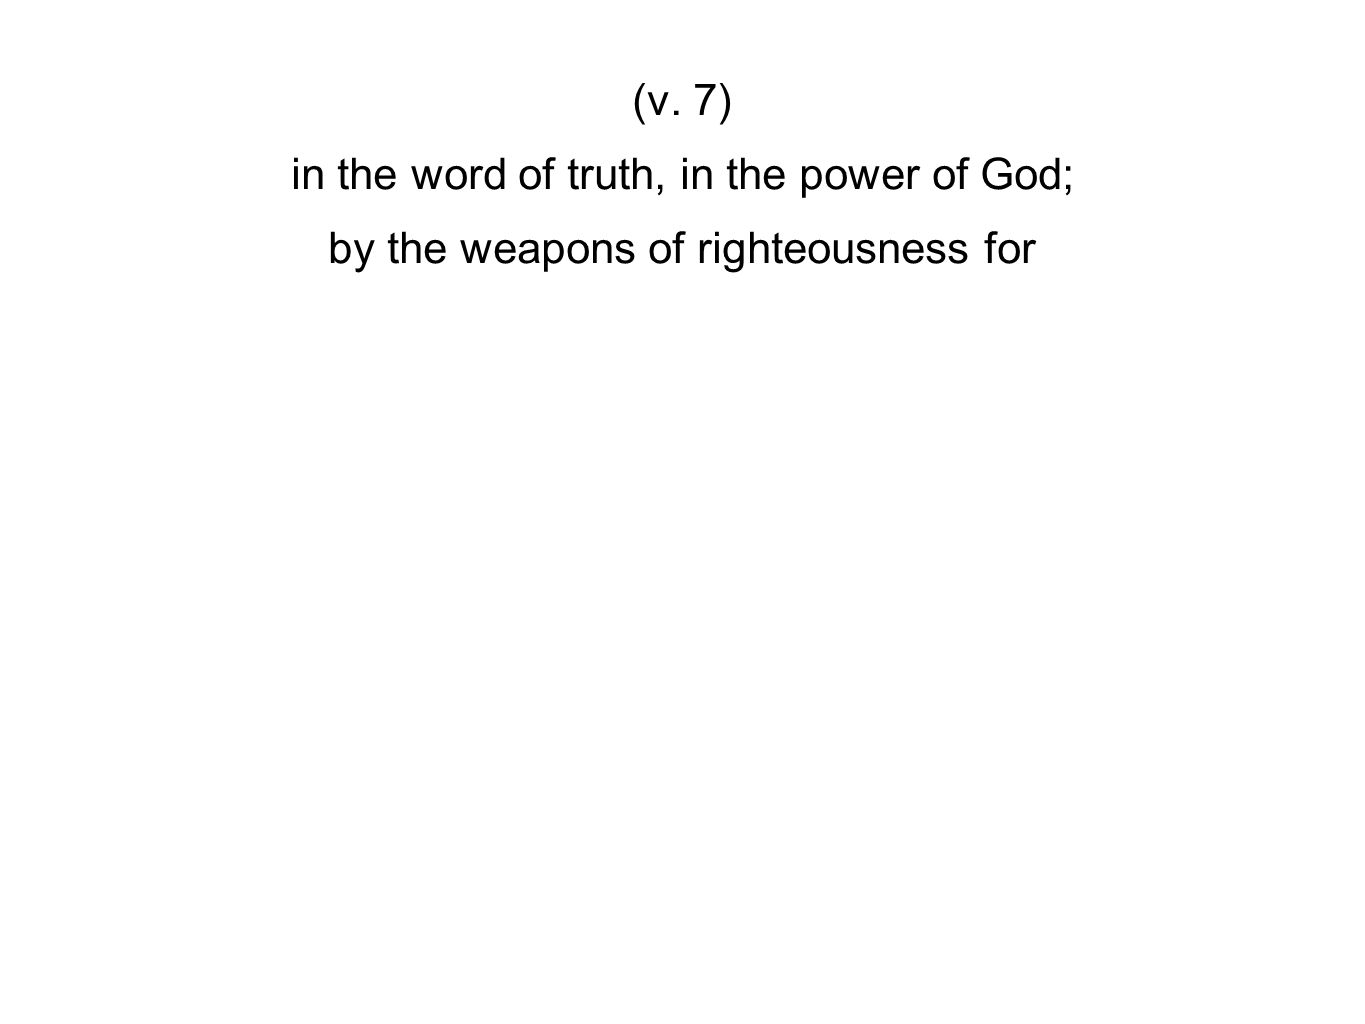 (v. 7) in the word of truth, in the power of God; by the weapons of righteousness for